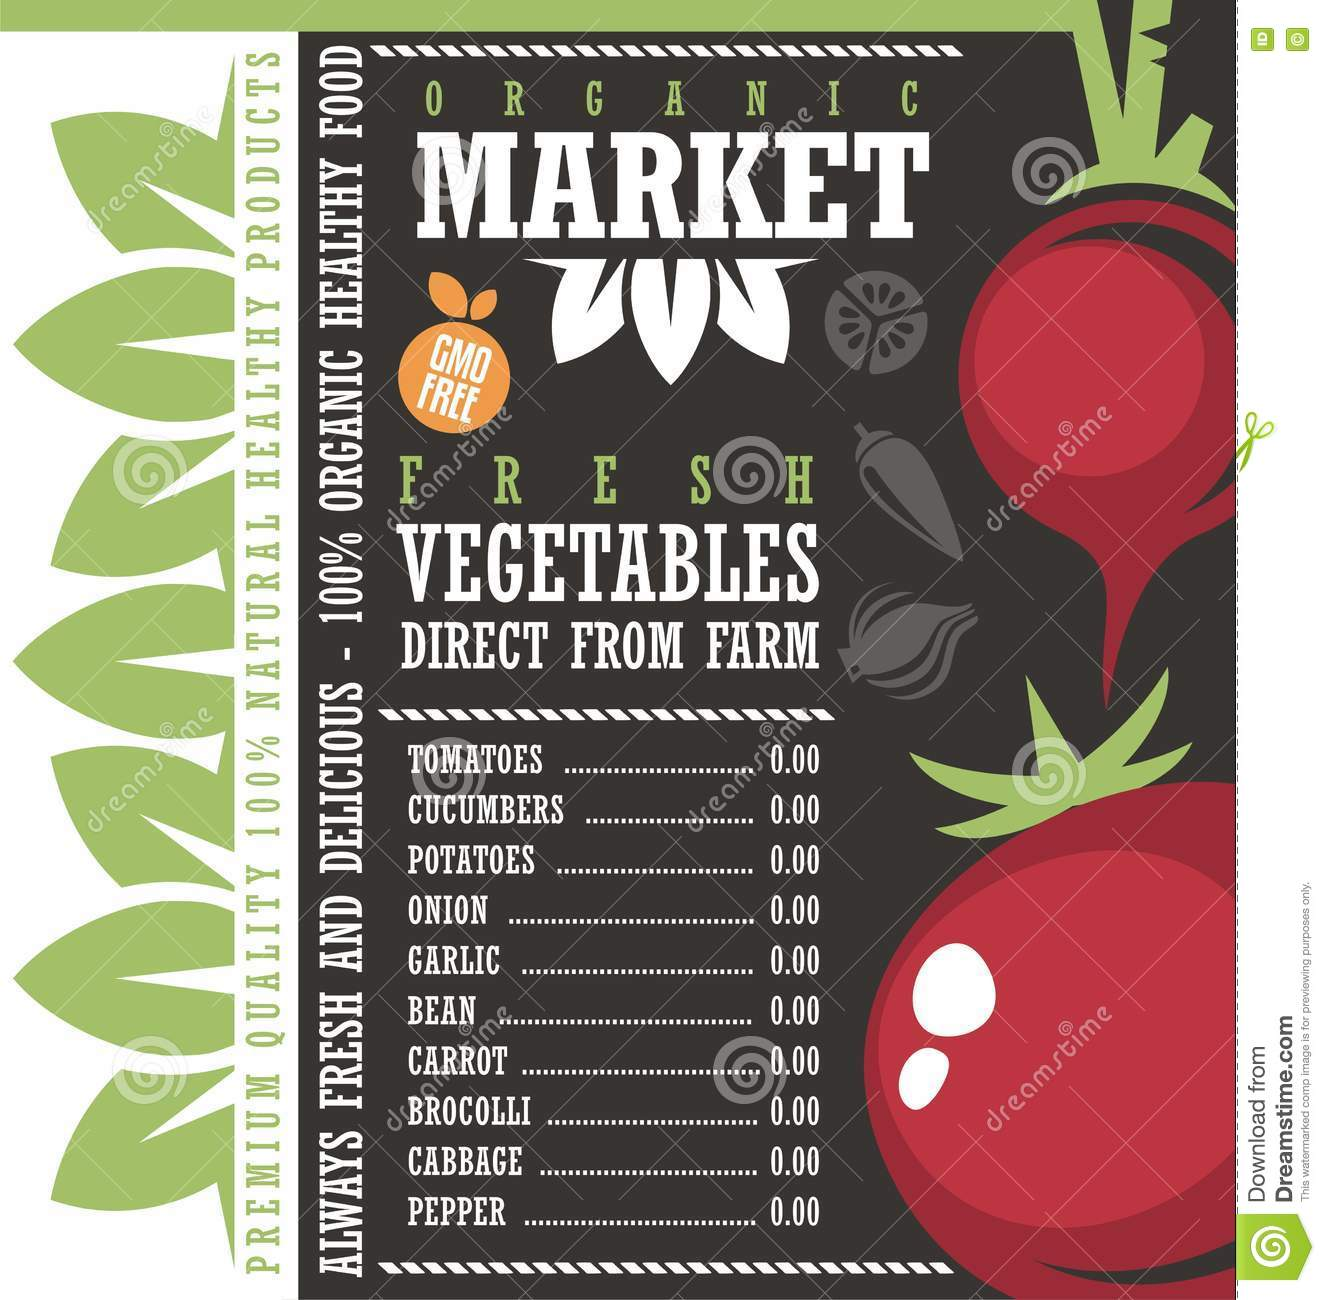 farm fresh vegetables market price list template royalty free vector - Free Price List Template